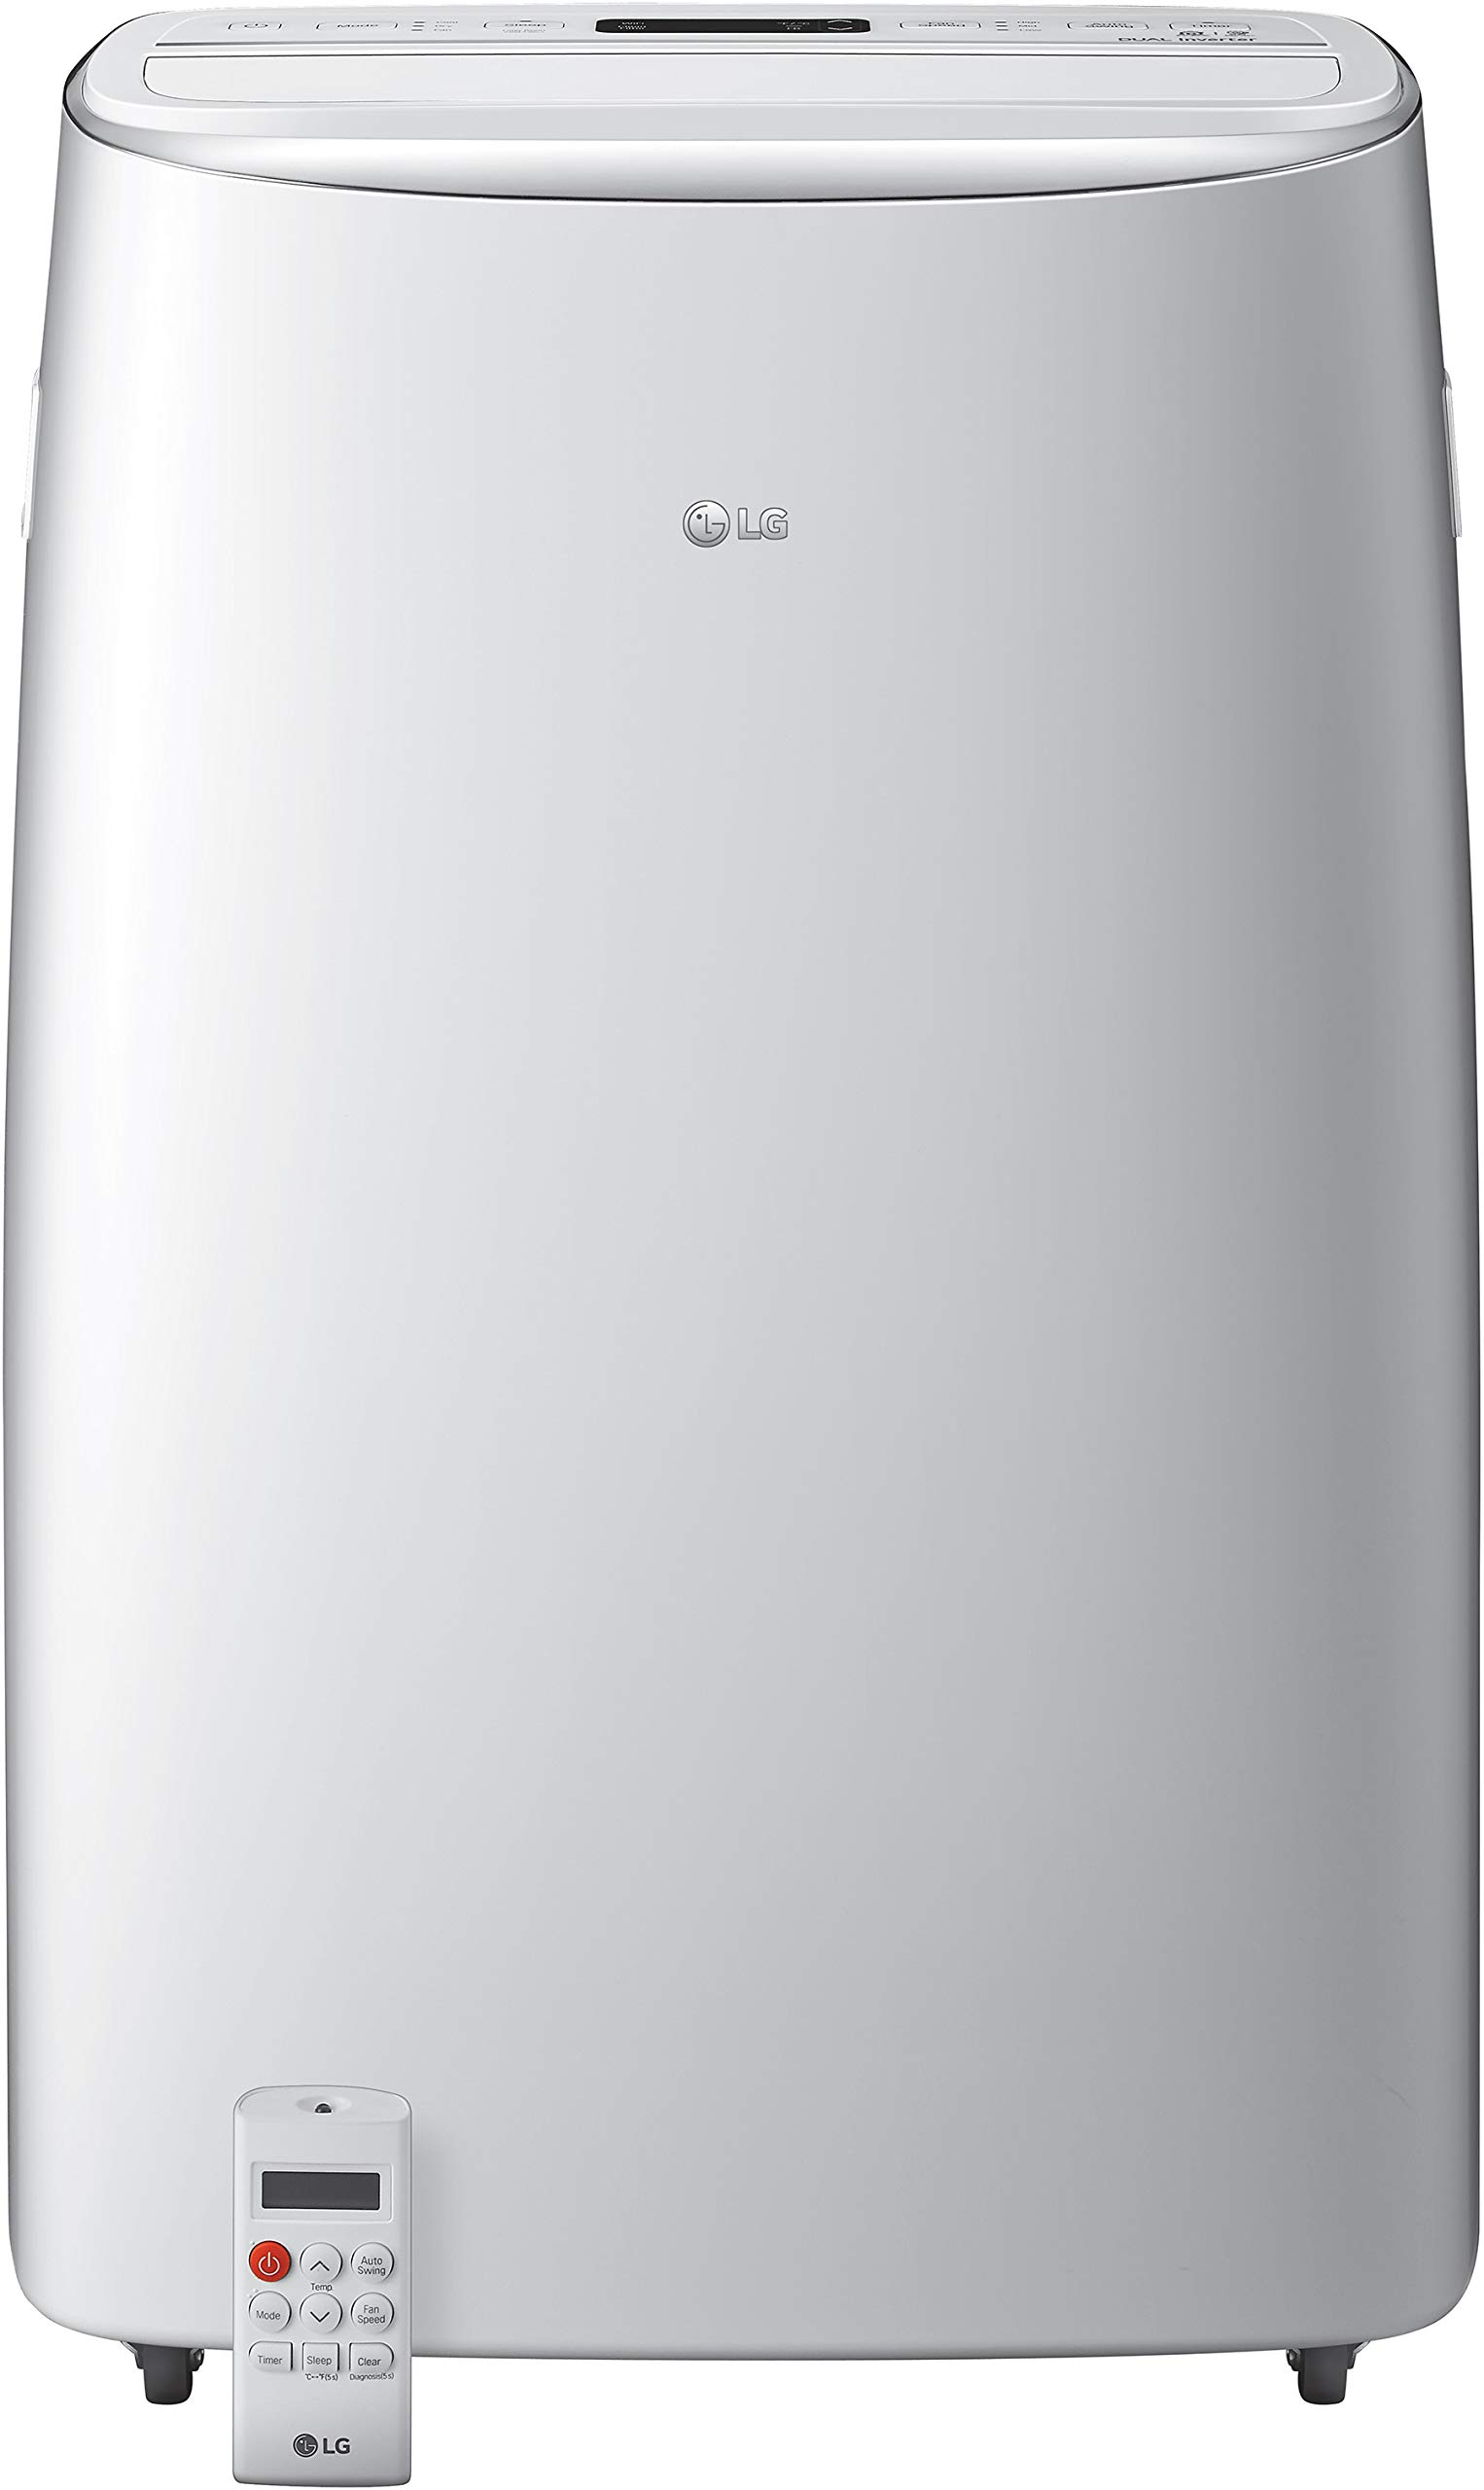 LG 115V Dual Inverter Technology Portable Air Conditioner, White by LG